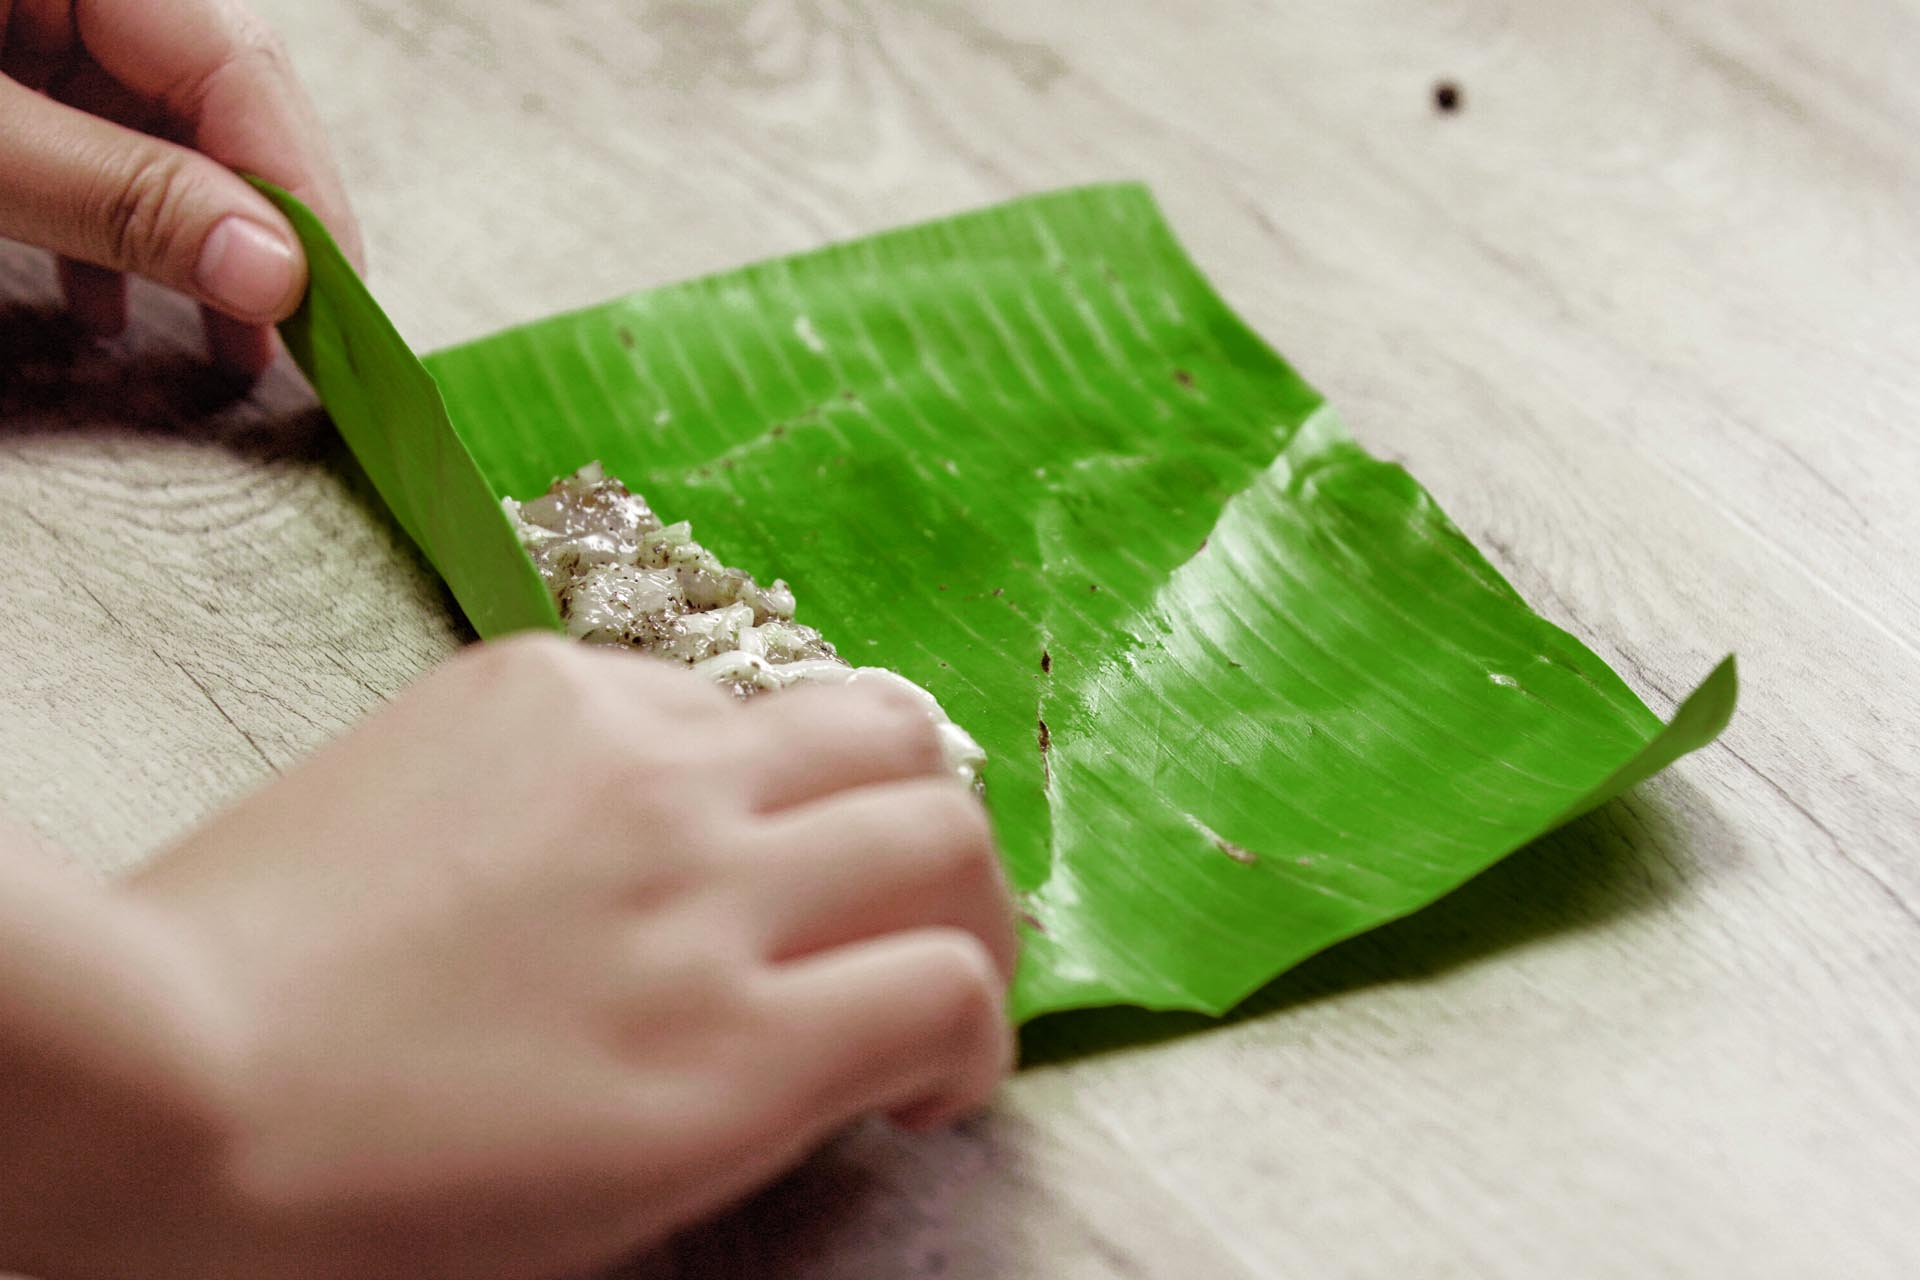 Wrap filling in banana leaf